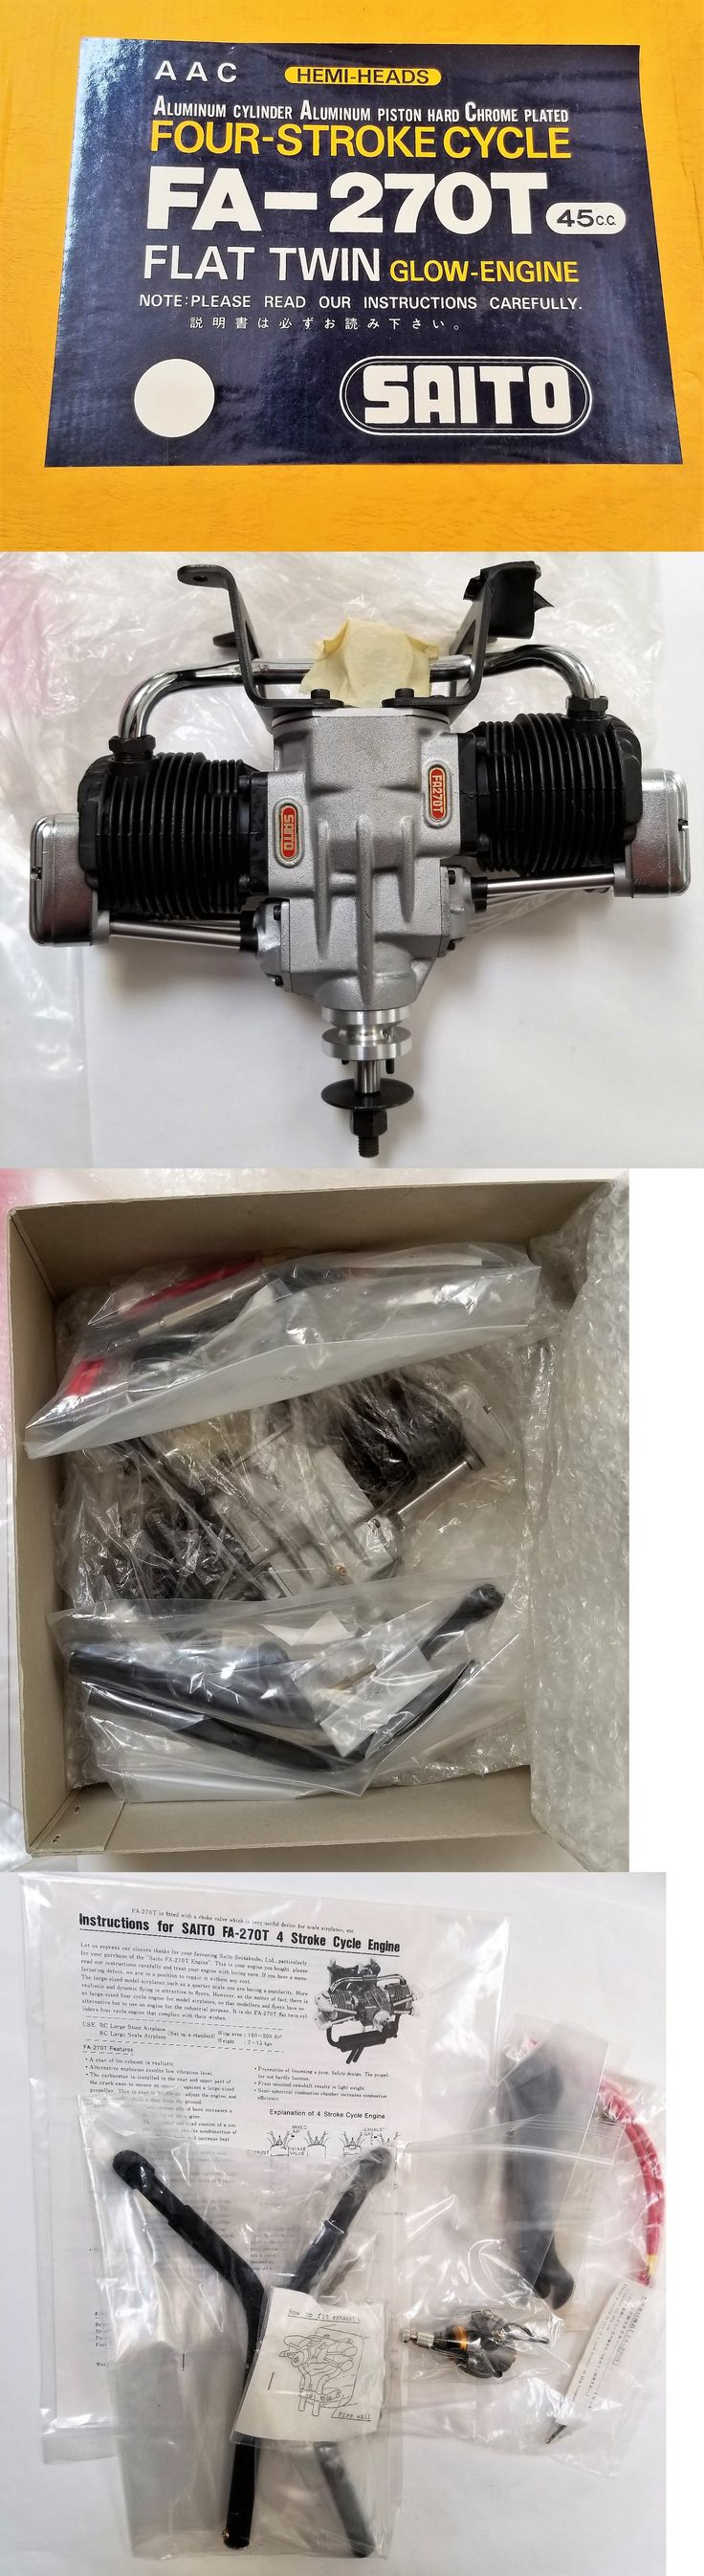 Motor and Engine Parts and Accs 182193: **New** Saito Fa-270T 4-Stroke Engine For Rc Model Airplane Nitro Fuel Engine ~ -> BUY IT NOW ONLY: $550 on eBay!